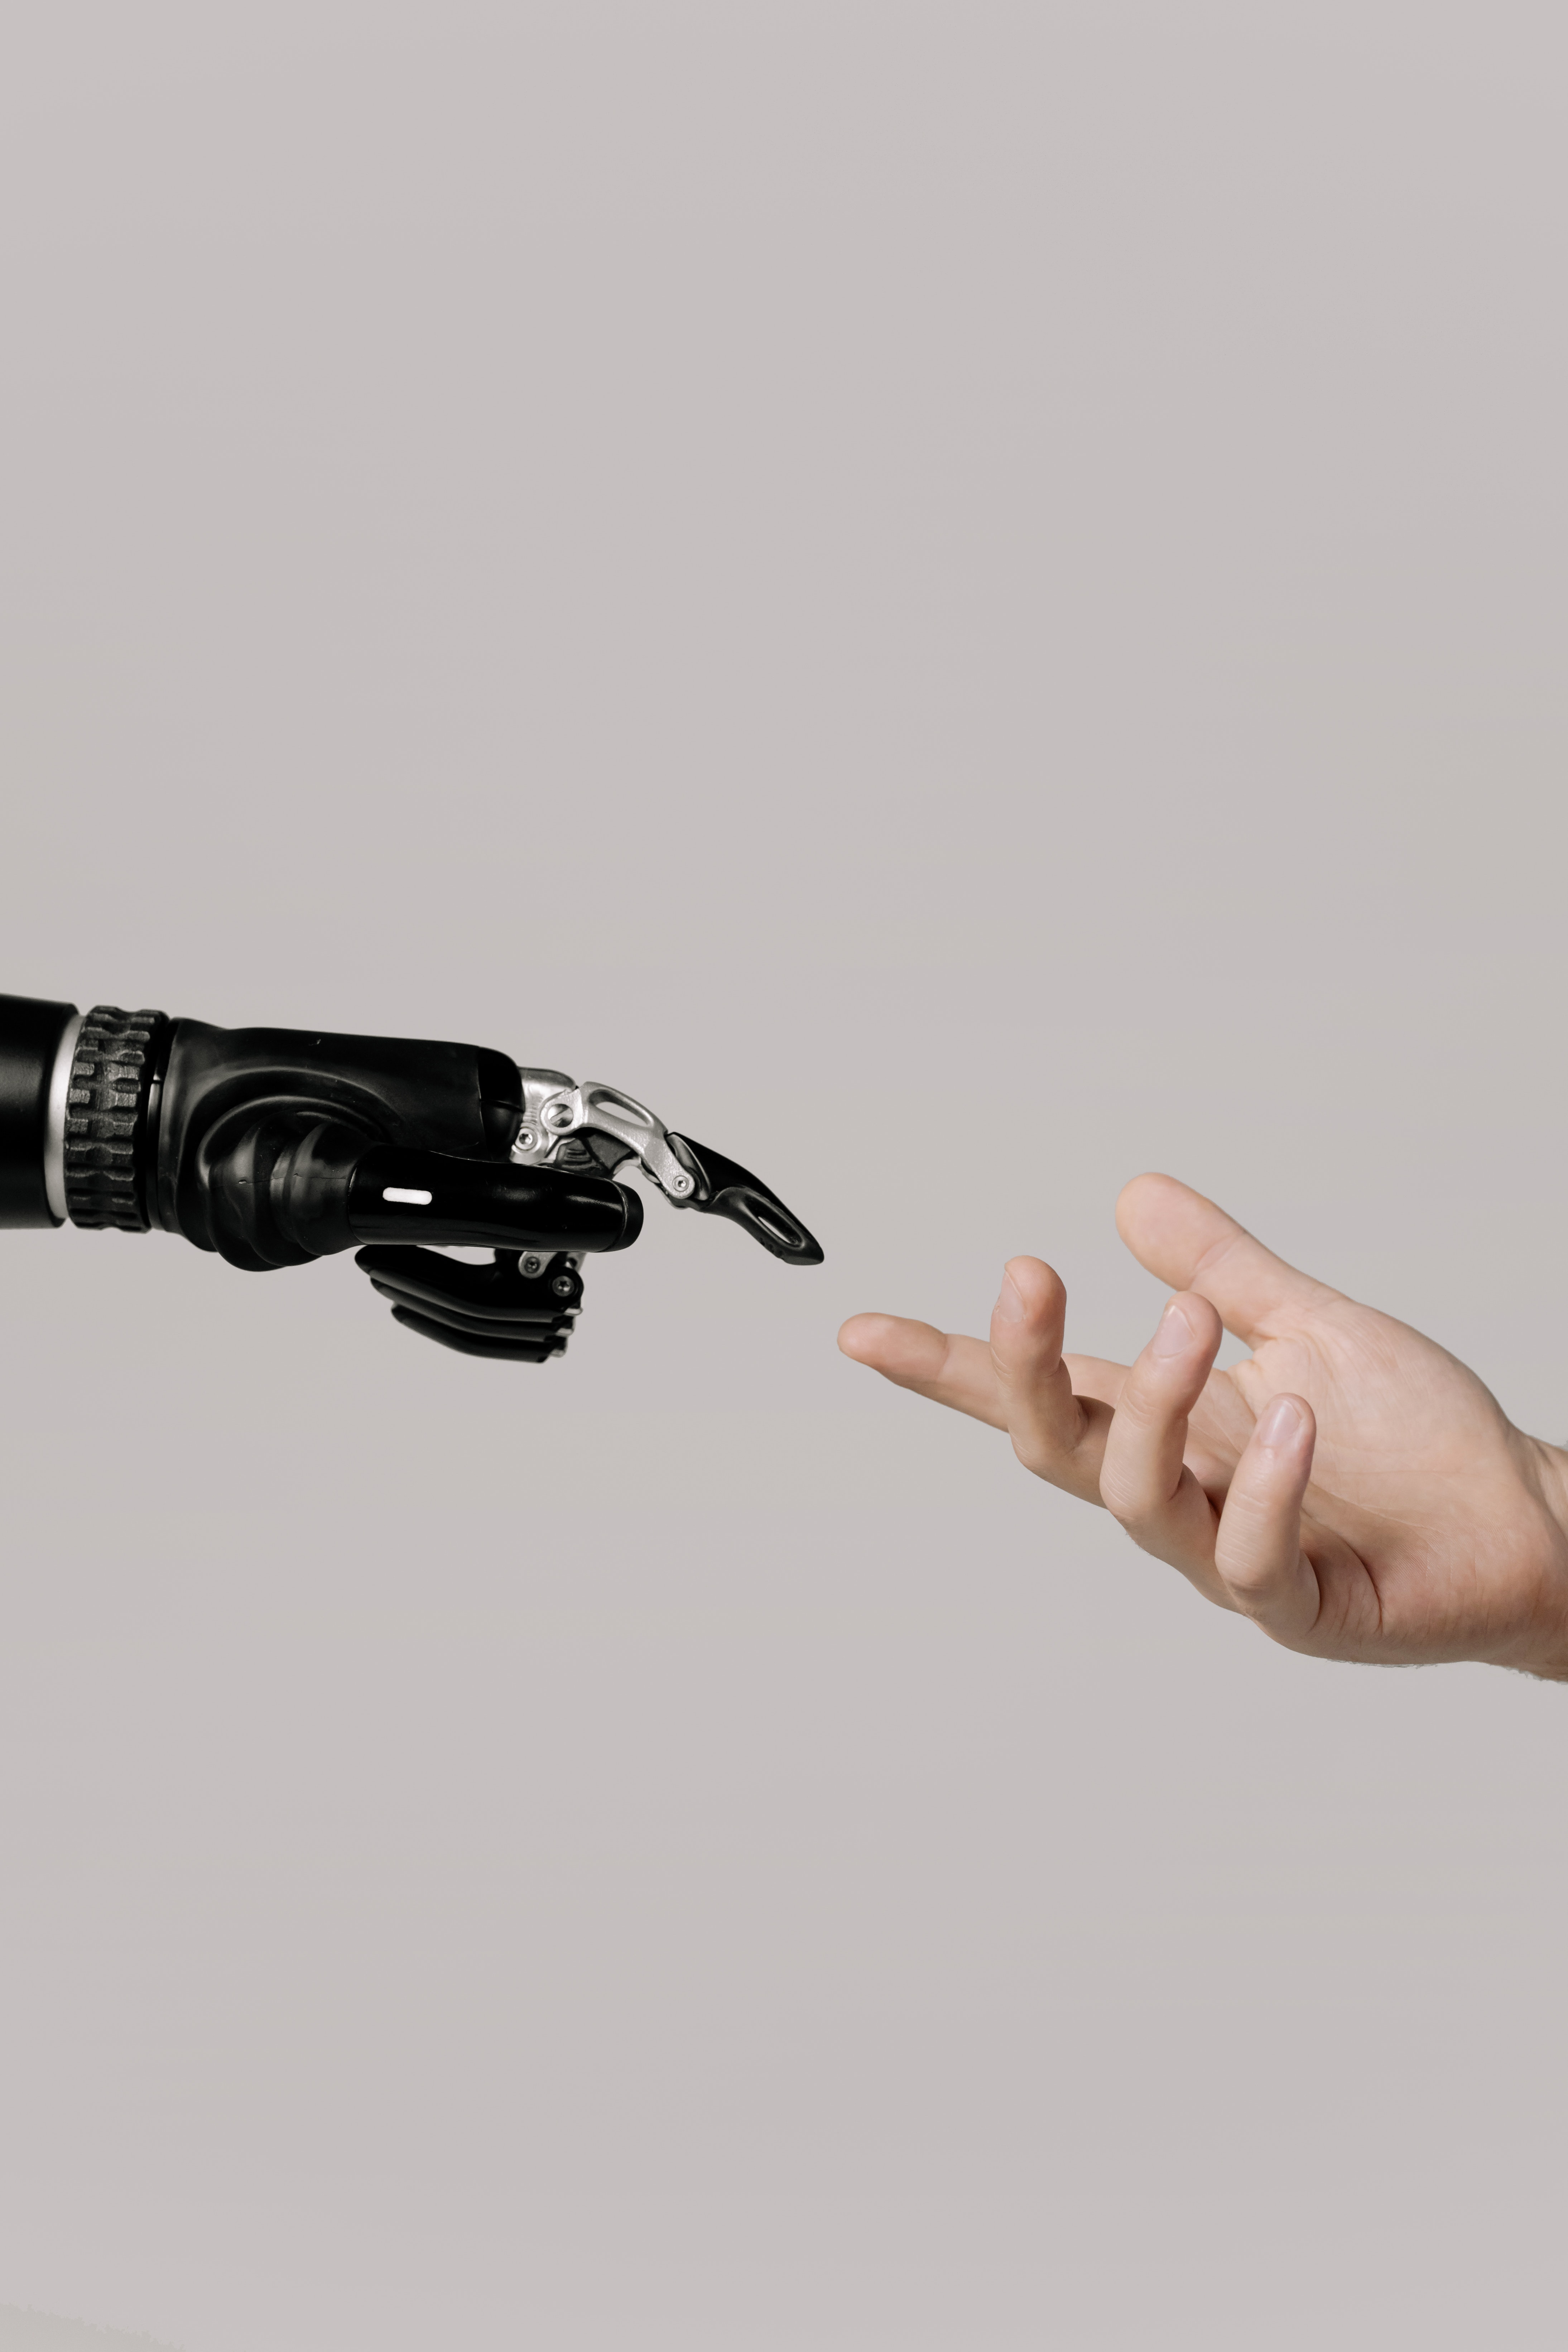 Cyborg hand and human hand almost touching